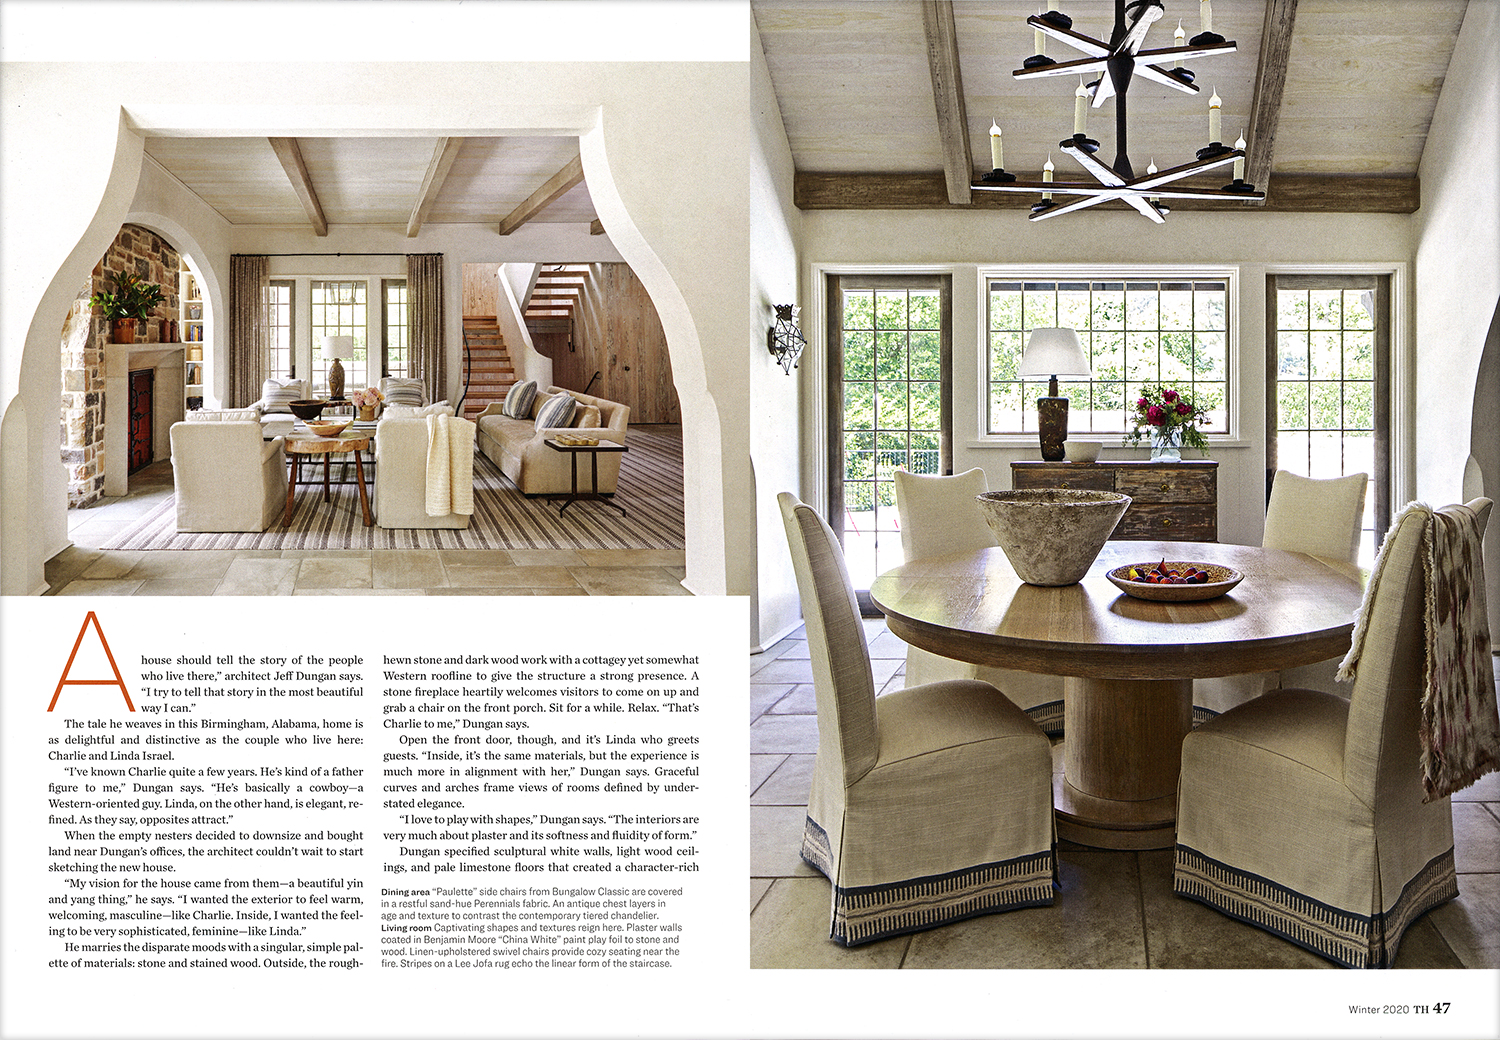 2020 11 TraditionalHome 02